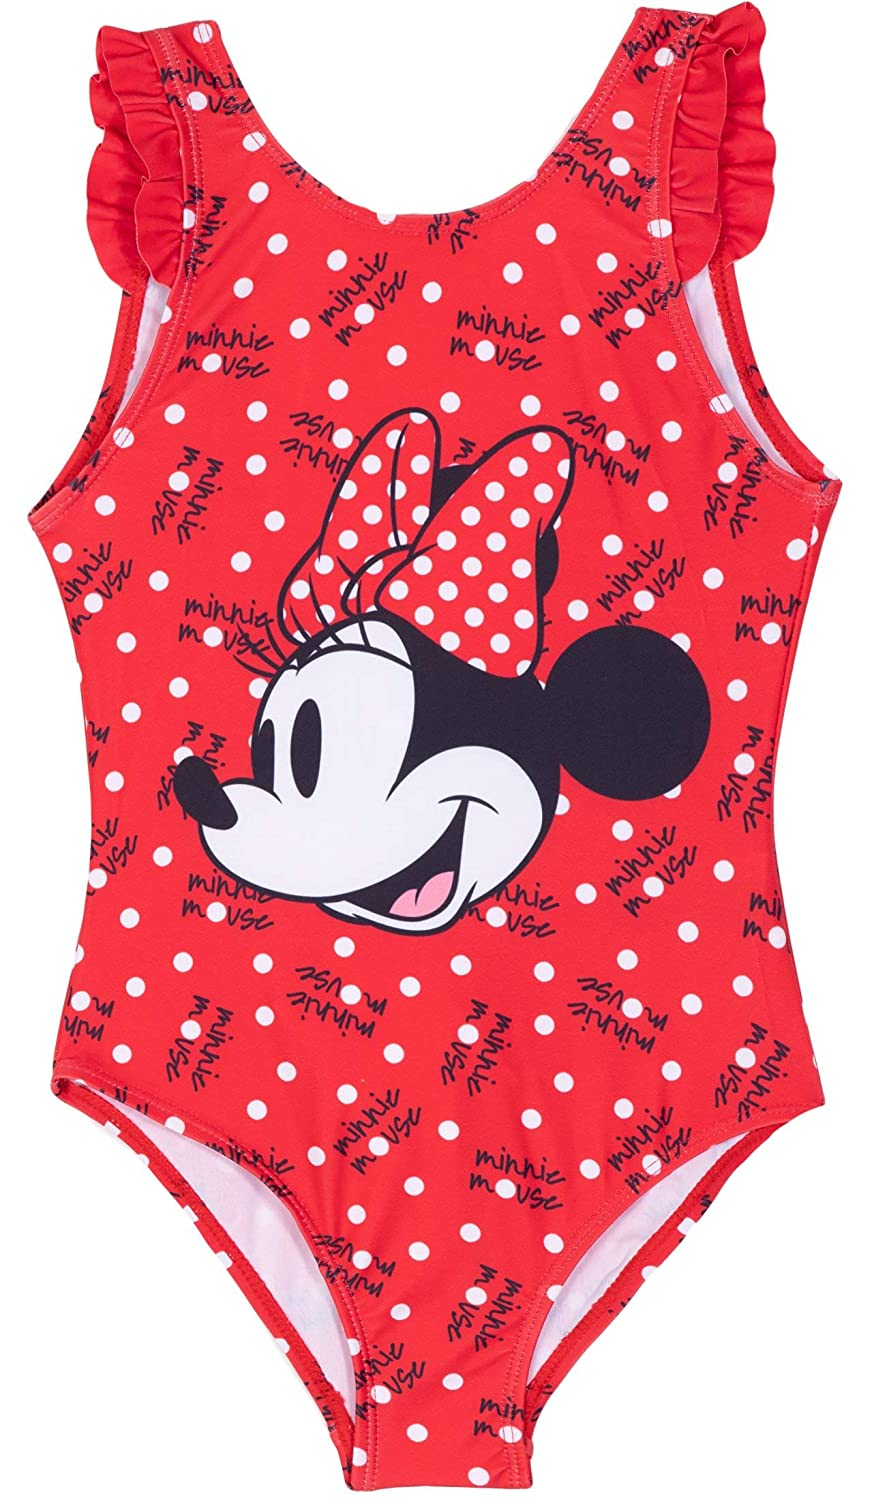 Official Disney Baby Minnie Mouse Swimming Costume Swimsuit Swimwear 12Mths-3yrs